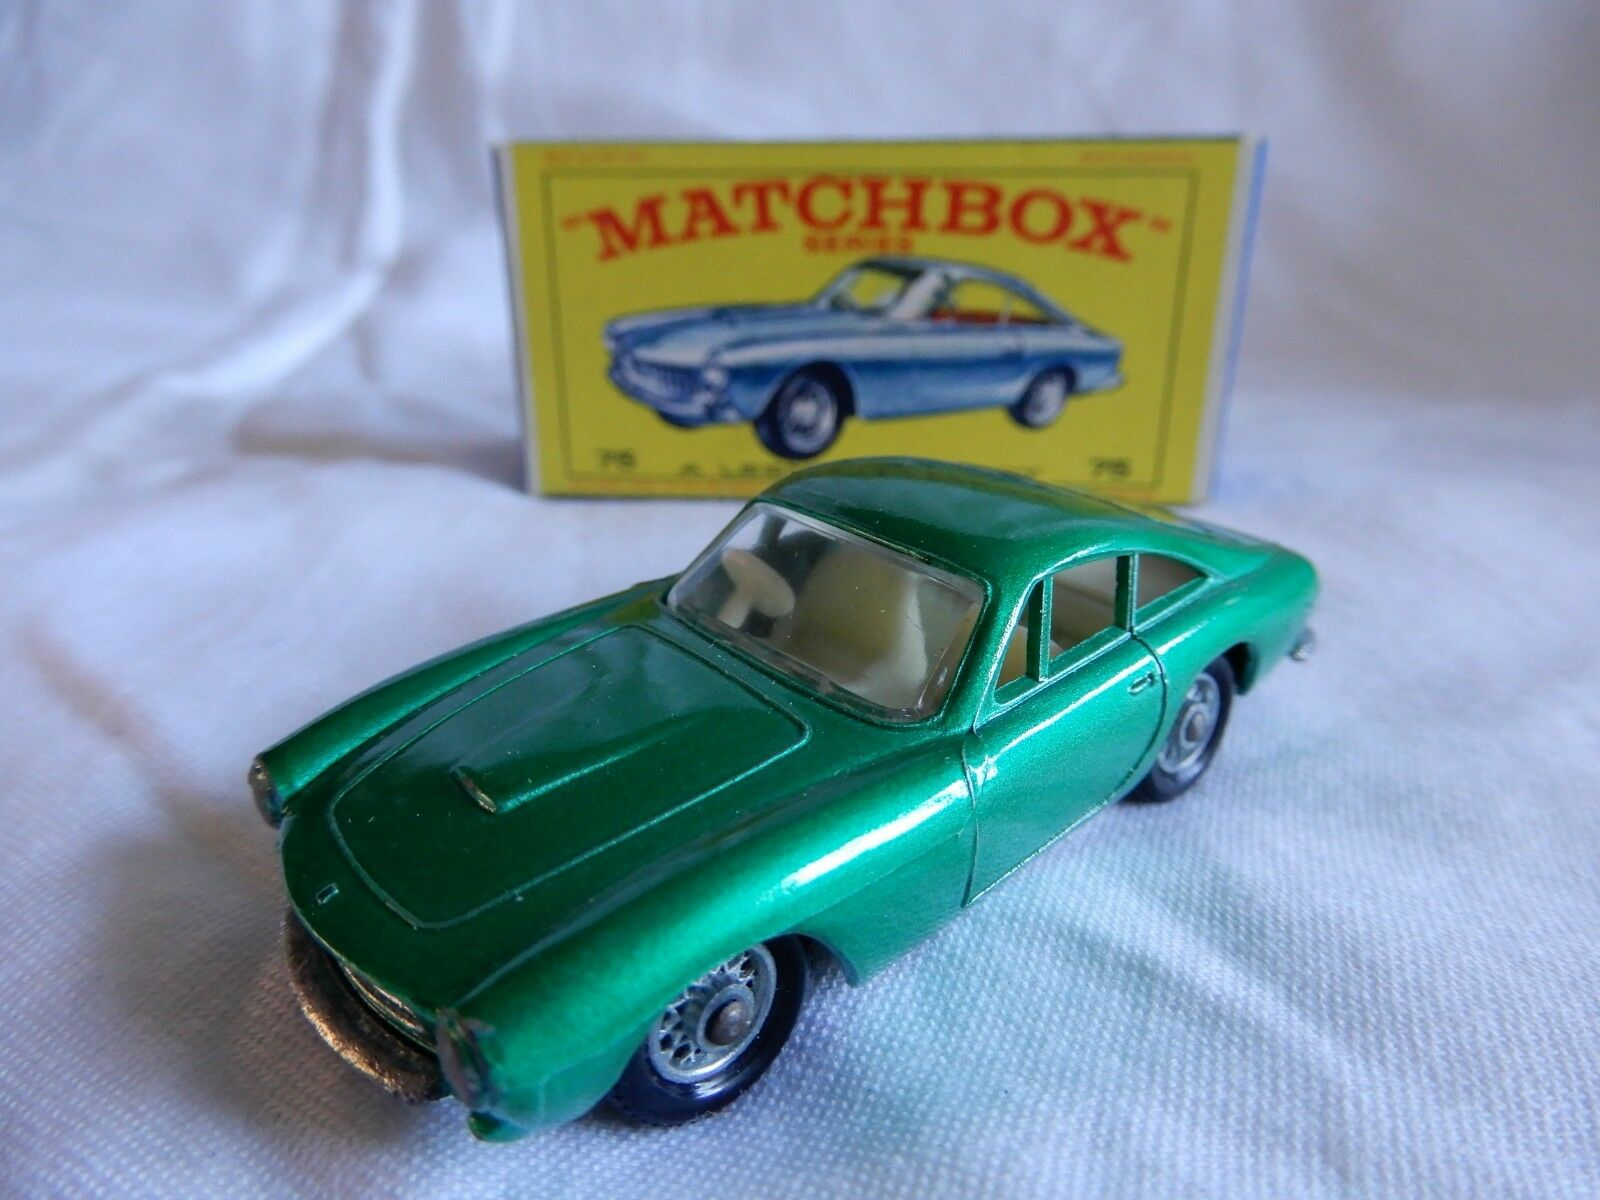 LESNEY MATCHBOX SERIES  FERRARI  BERLINETTA 75 CAR BOXED MADE IN ENGLAND